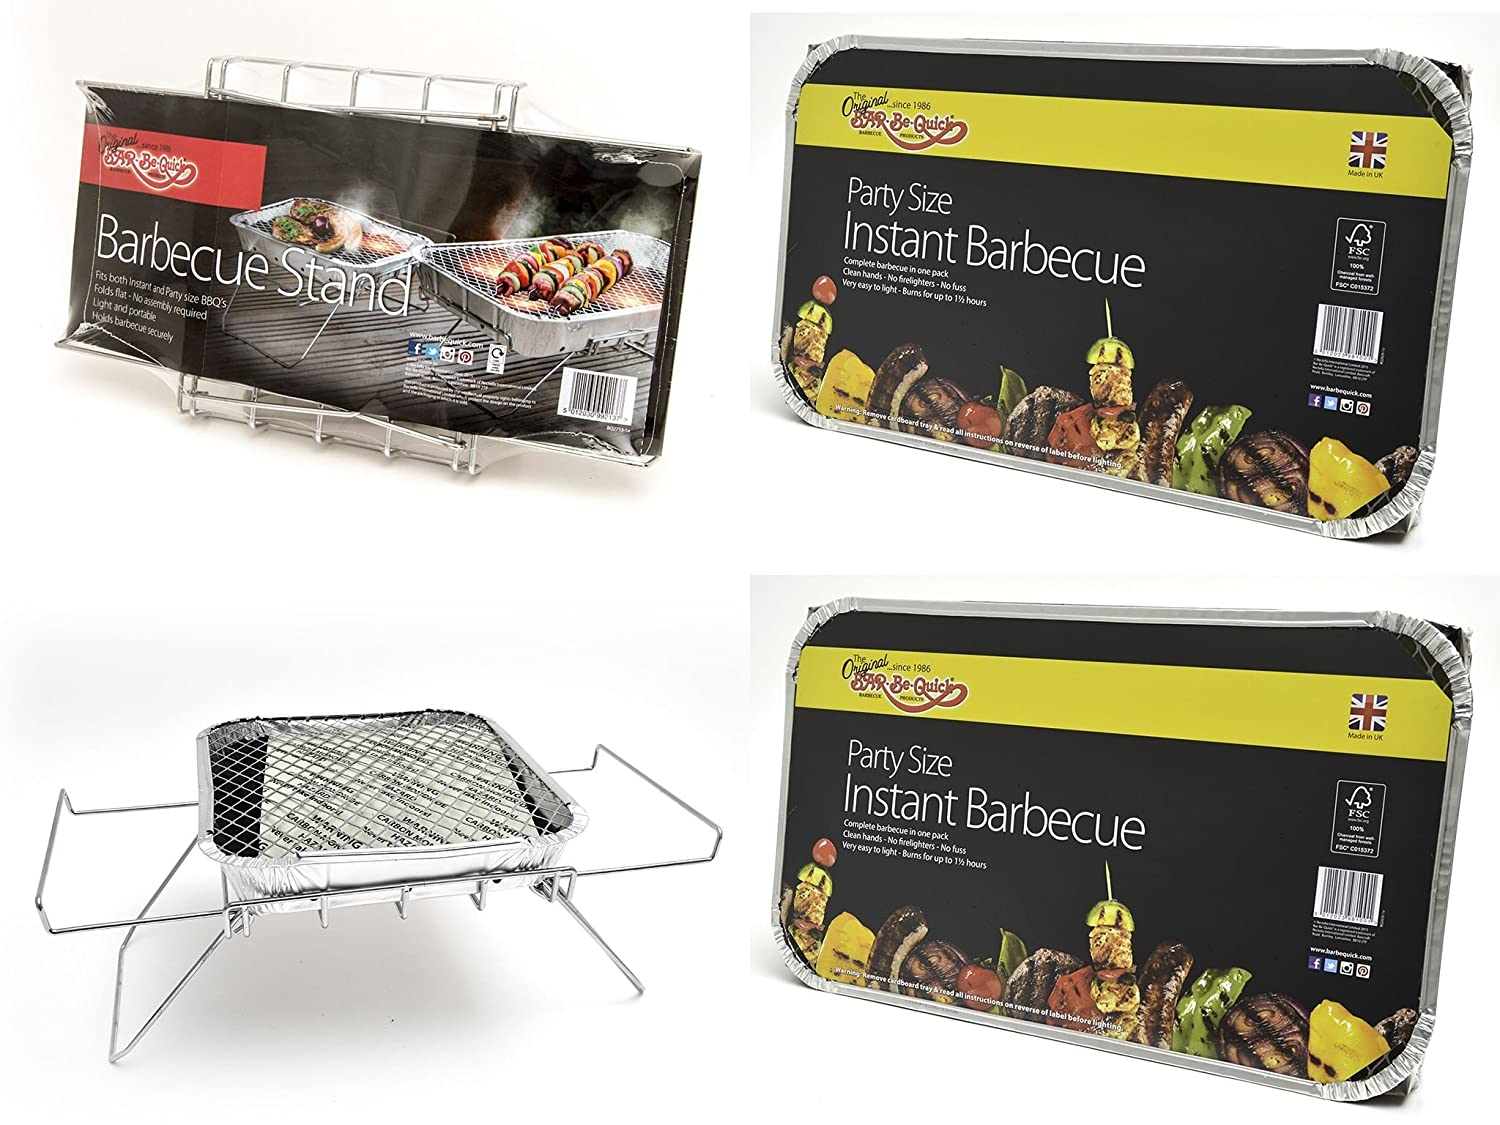 Bar-Be-Quick Instant Barbecue Stand- Foldable Instant BBQ stand. Fits both size of disposable barbecue, No assembly. Light & portable. + 2 X Family size Instant BBQs- Each cooks for ten!